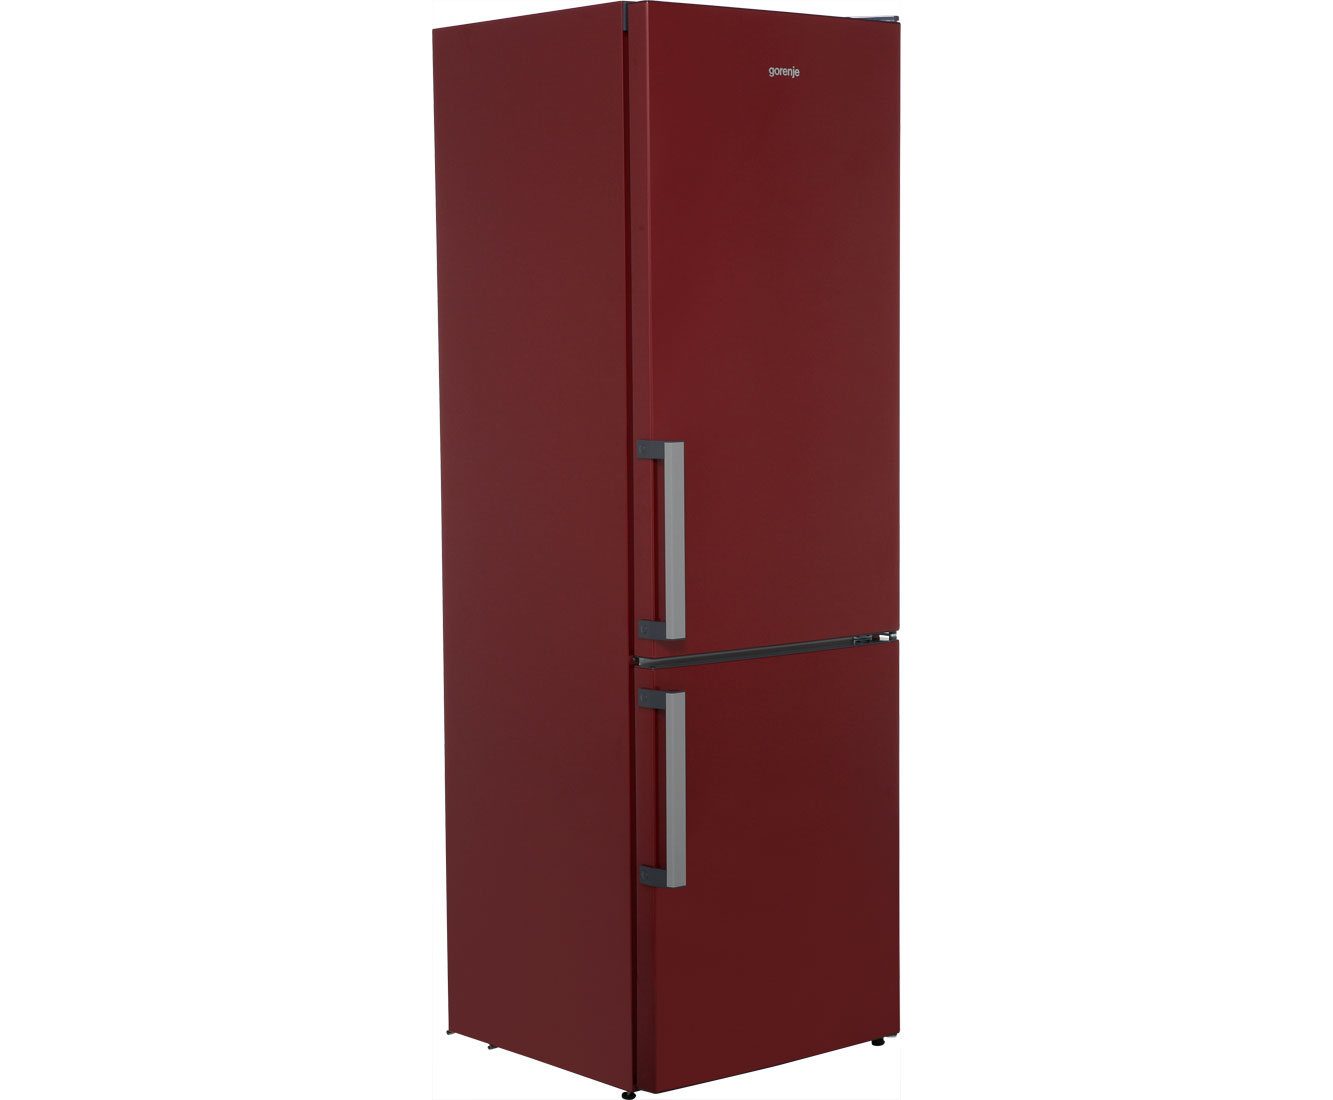 gorenje 60309 rot g nstig kaufen. Black Bedroom Furniture Sets. Home Design Ideas